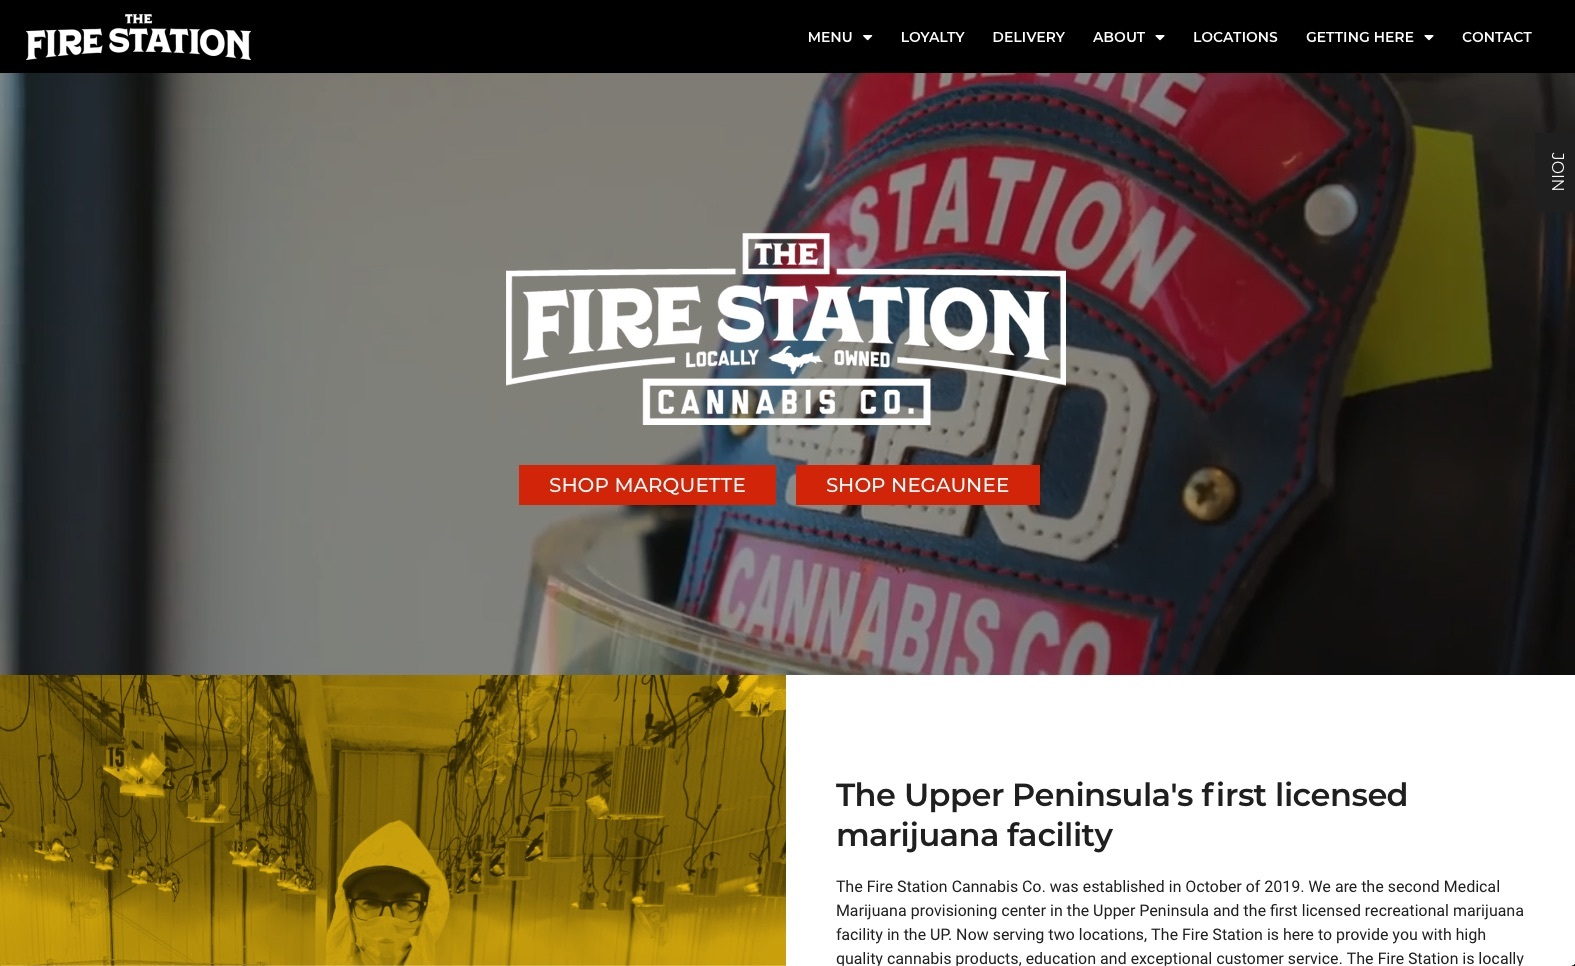 The Fire Station - Marquette, Michigan - best dispensary websites example